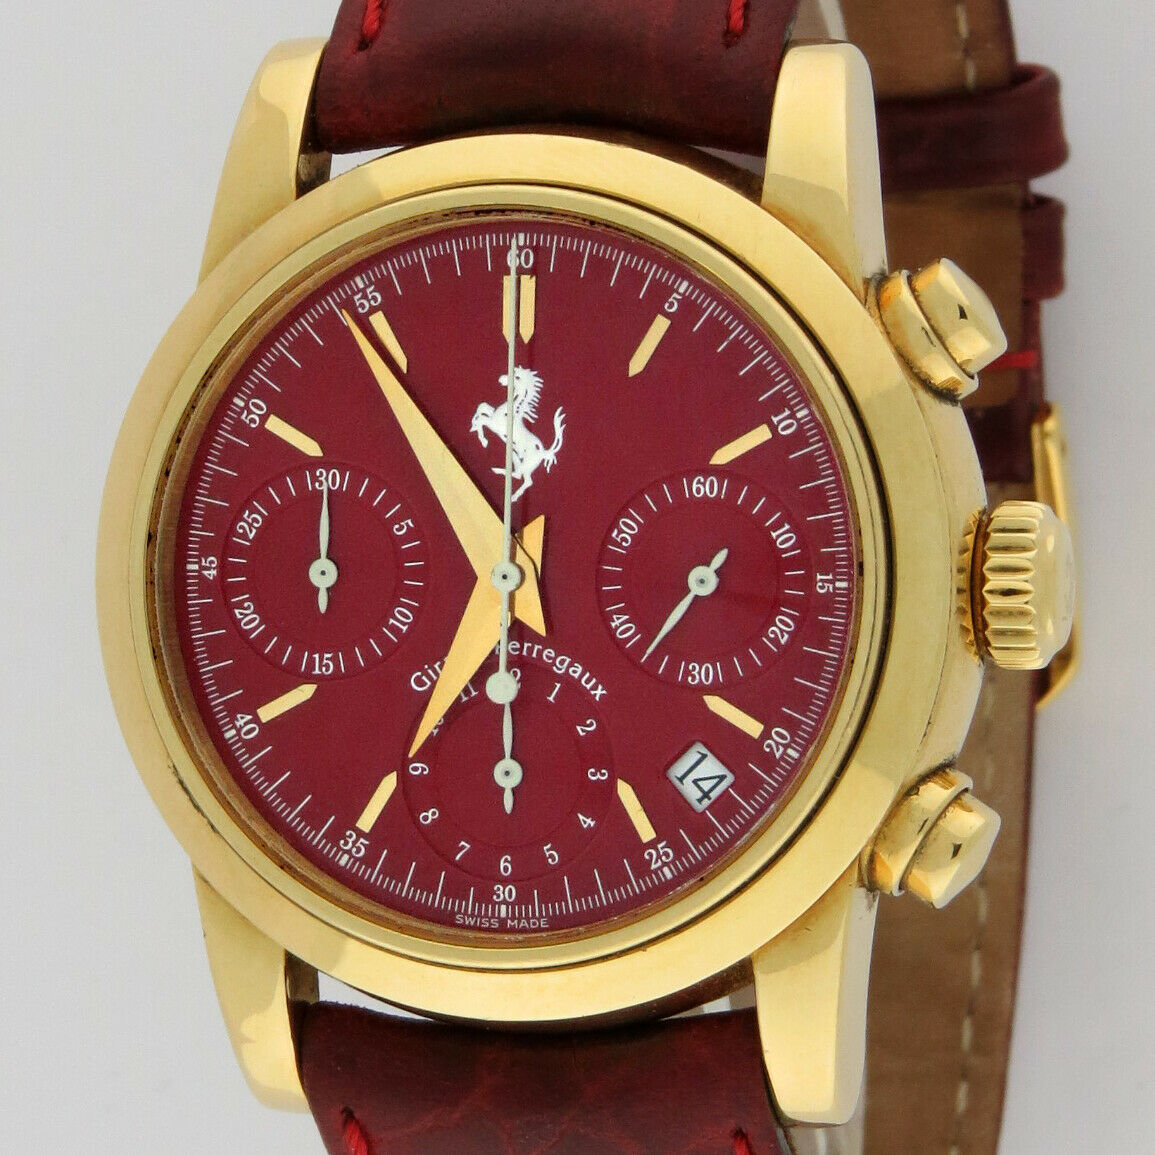 Girard Perregaux Ferrari 18K Gold Automatic Chronograph 8020 Red Dial 38mm Watch - watch picture 1